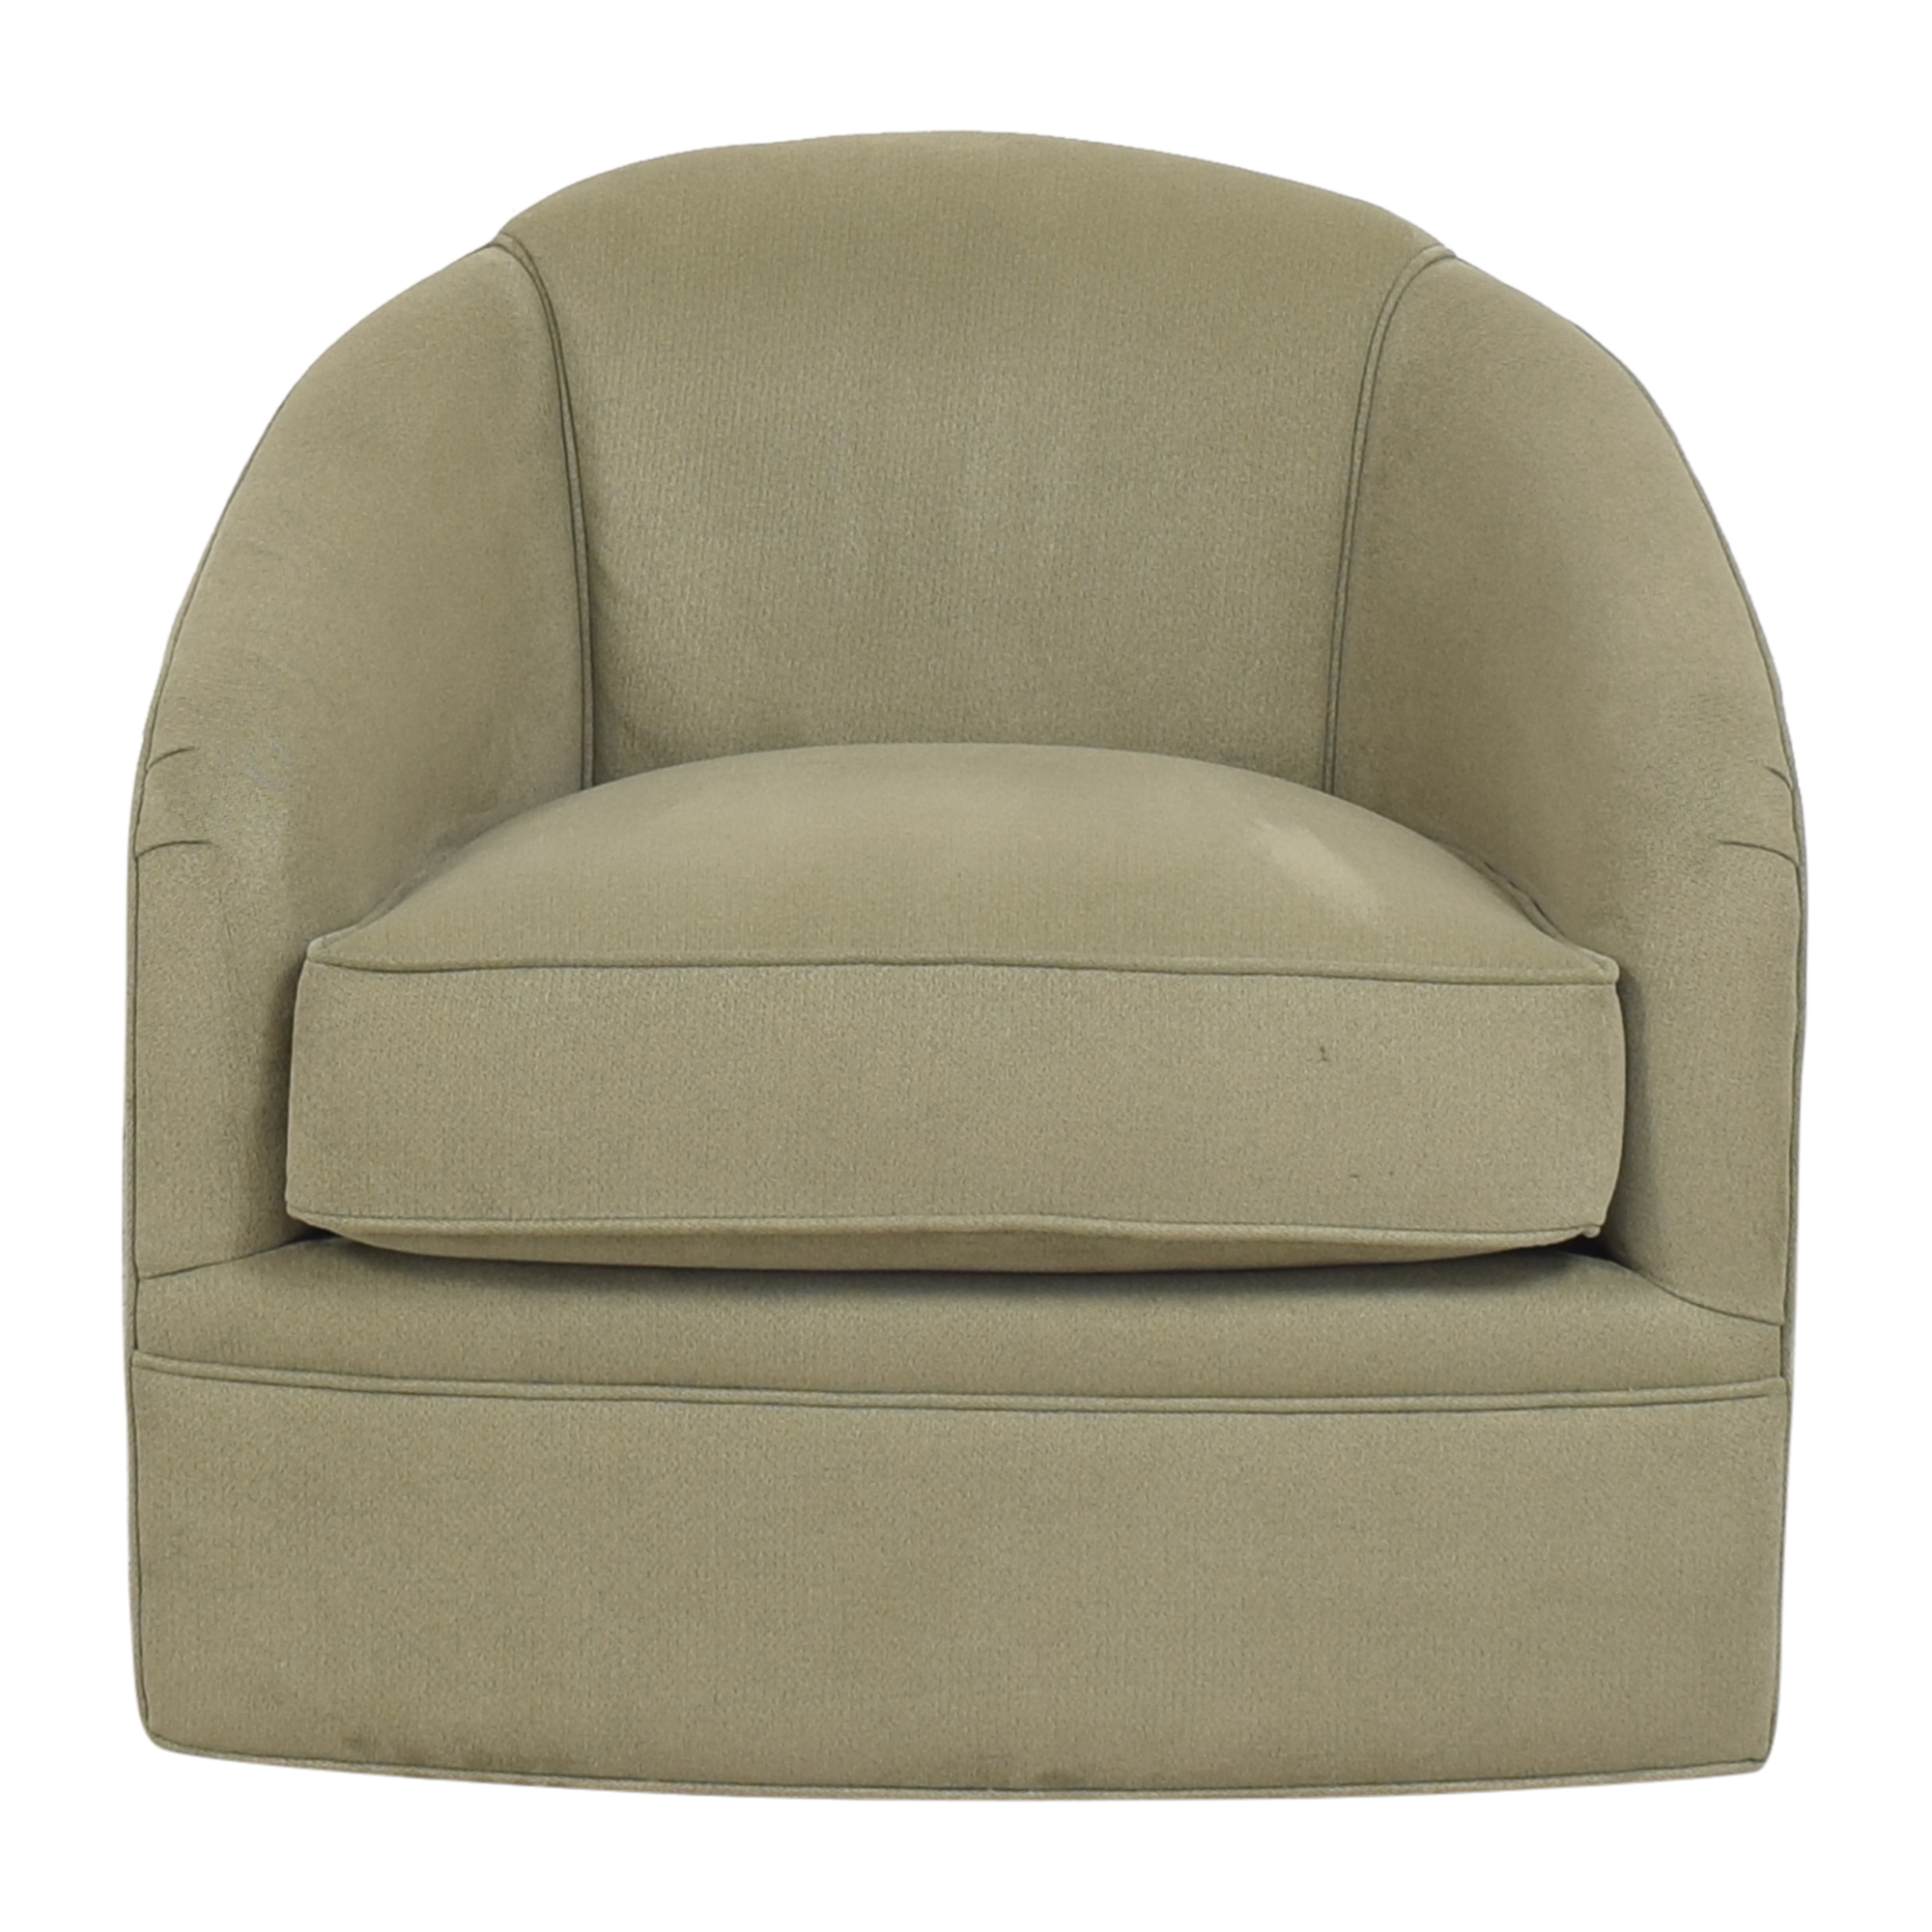 Maurice Villency Cushion Tub Swivel Chair sale